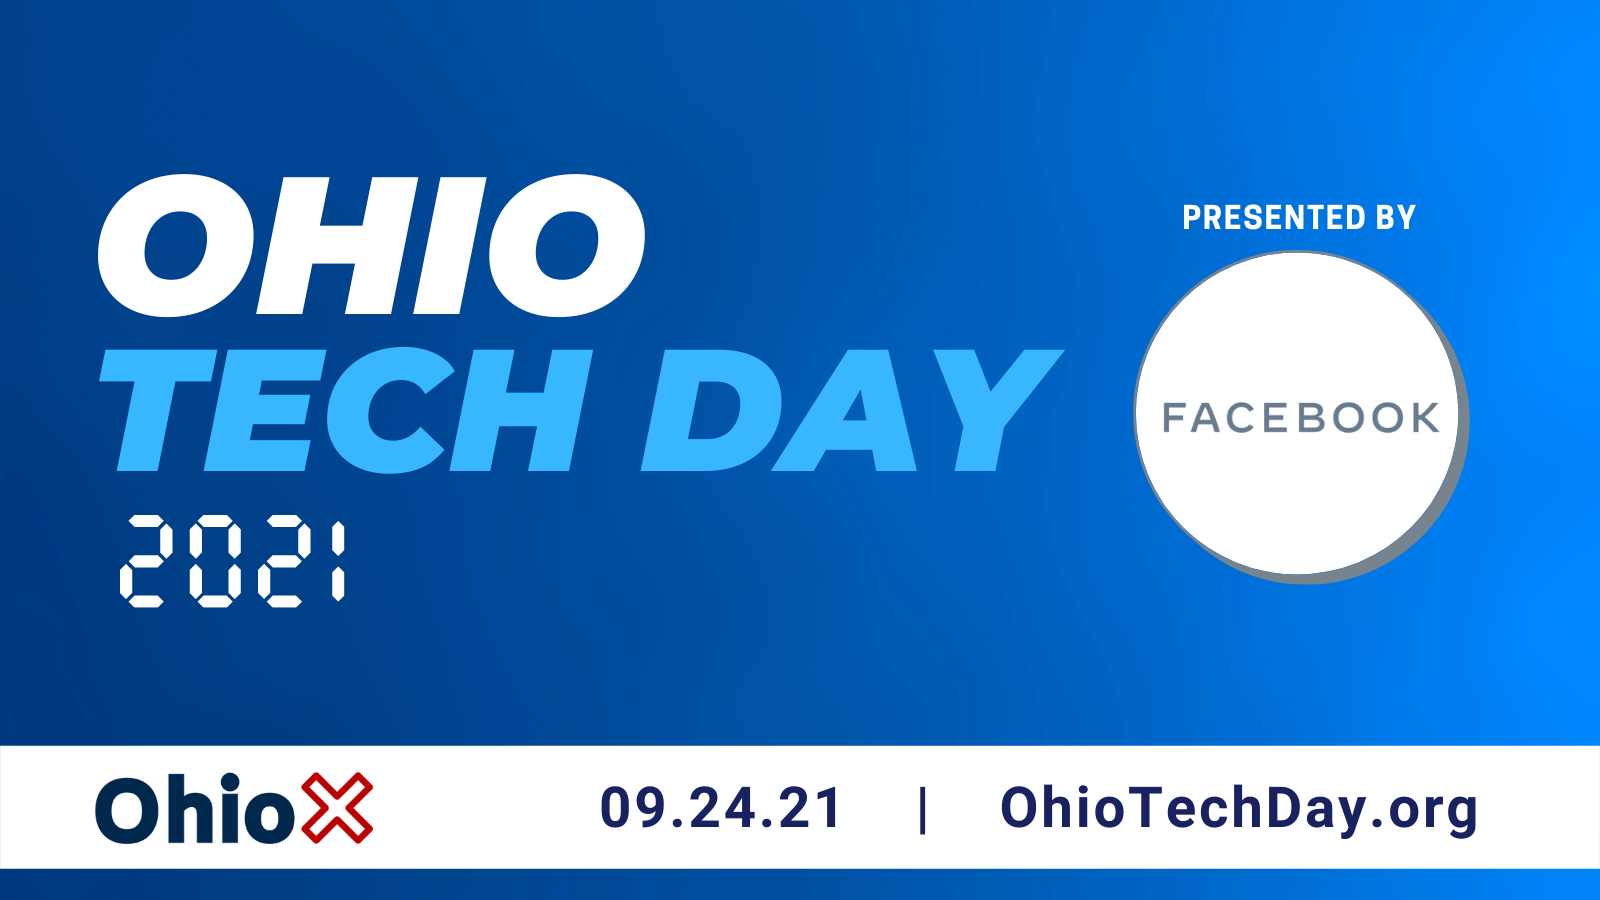 Ohio-Tech-Day-midwest-tech-events